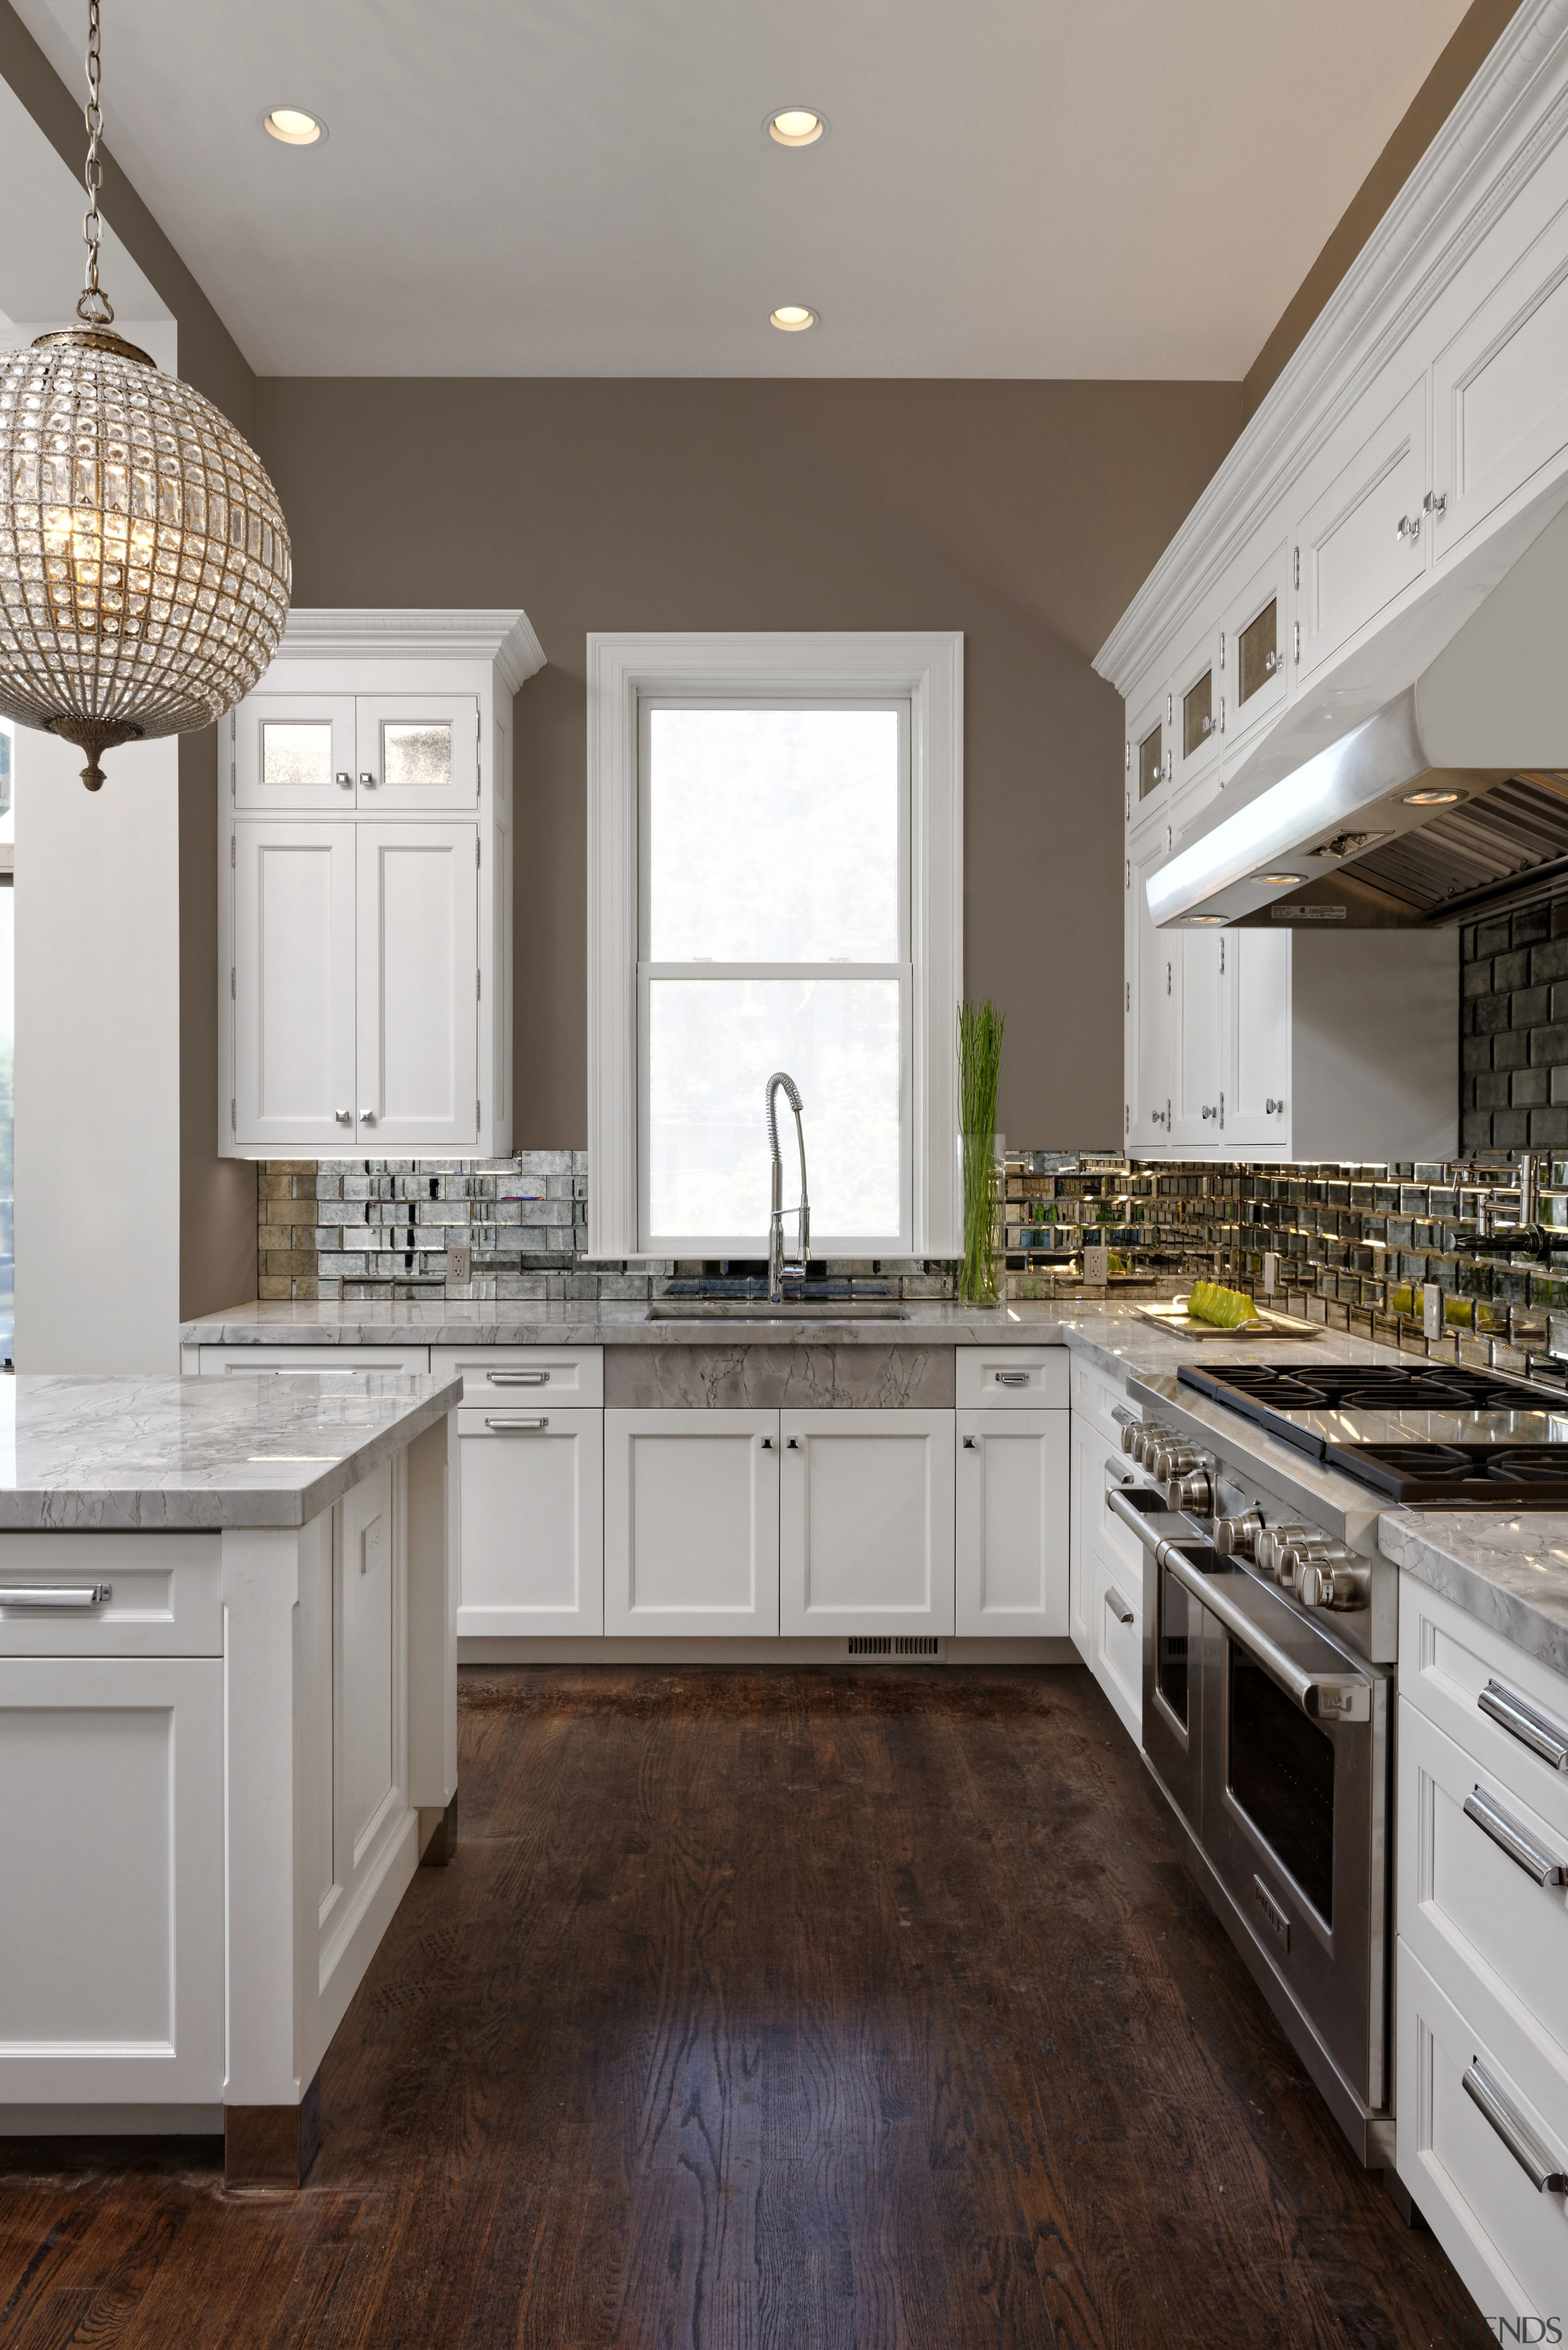 Wood floors and a taupe-coloured wall tone create cabinetry, countertop, cuisine classique, floor, flooring, hardwood, home, interior design, kitchen, room, wood flooring, gray, brown